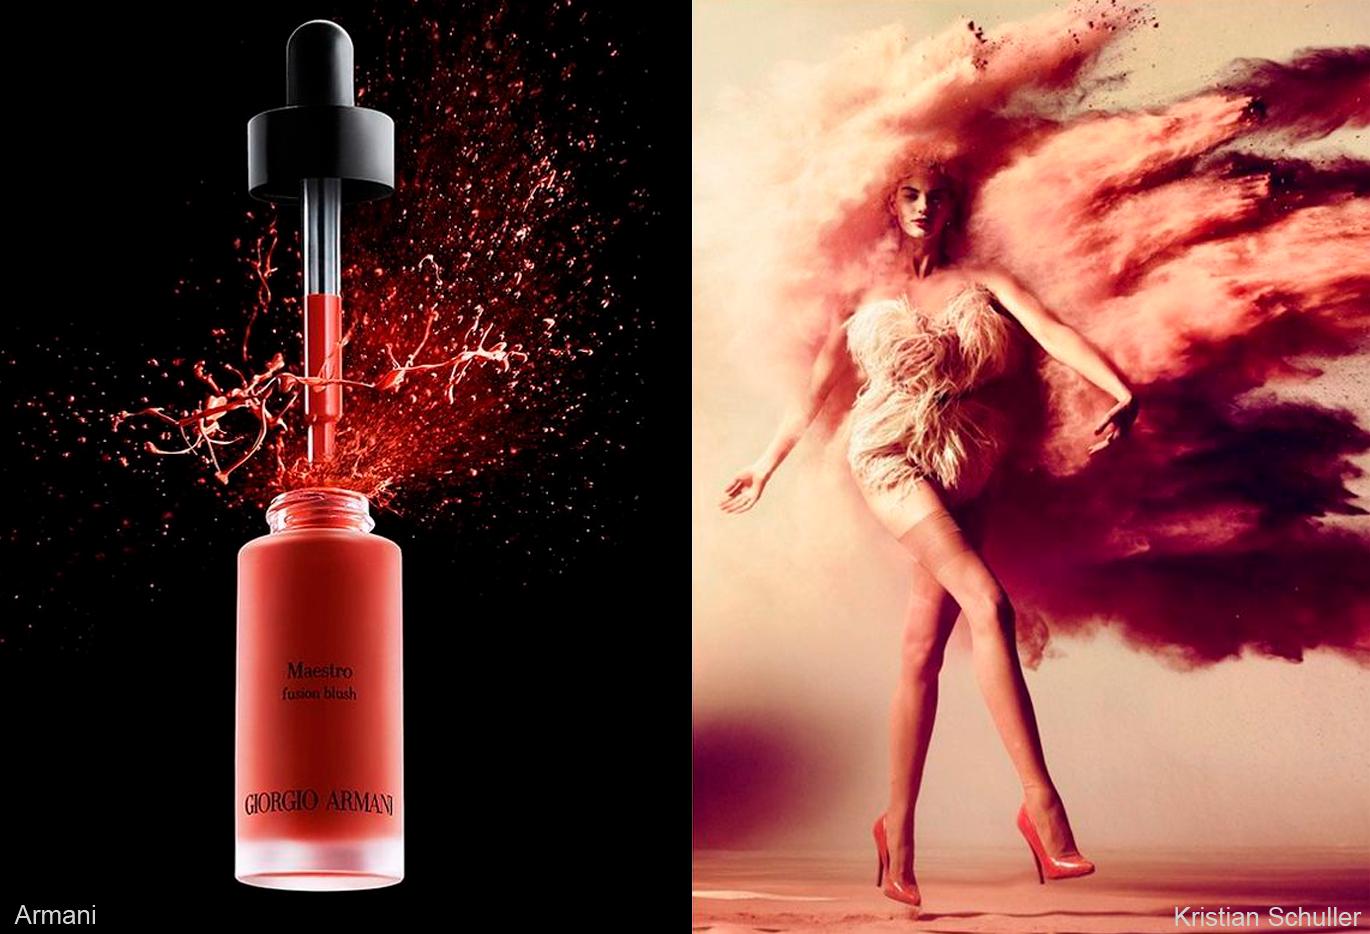 Left Image: Liquid blush caught mid-splash exiting its bottle, Right Image: Woman with cloud of pink dust-like cloud caught mid-motion